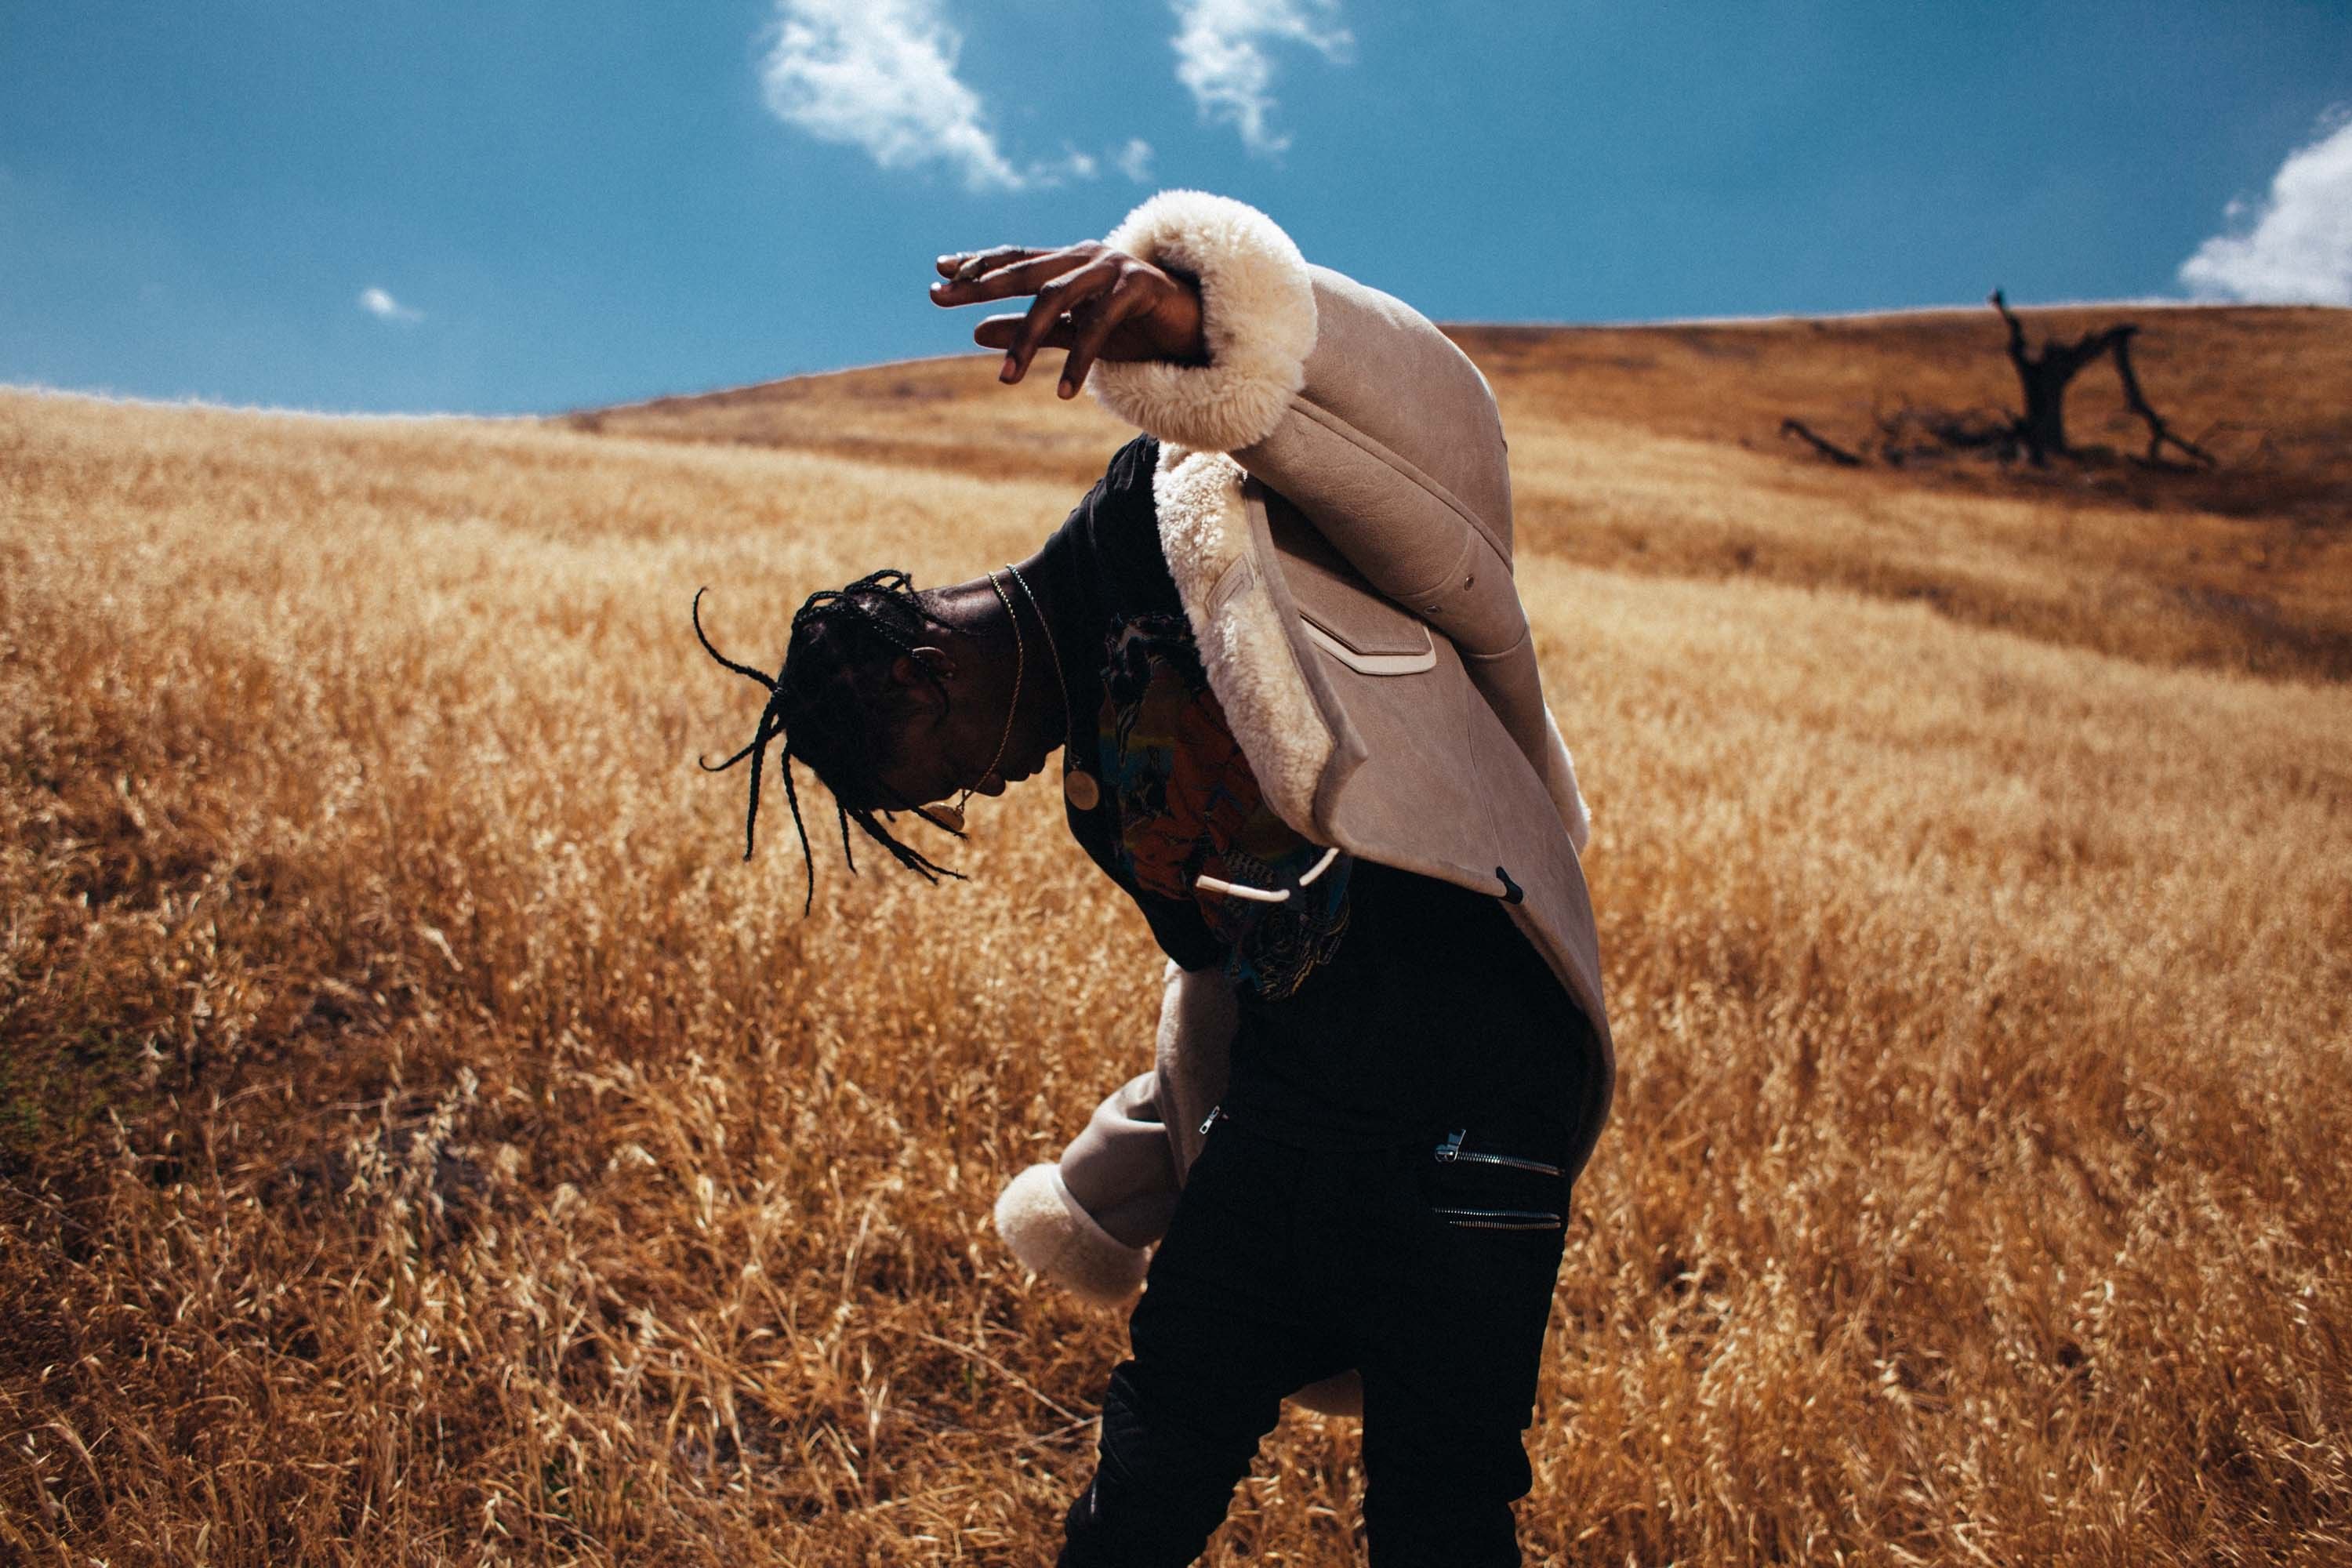 Travis Scott Wallpapers Hq Travis Scott Wallpapers Travis Scott Travis Scott Rodeo